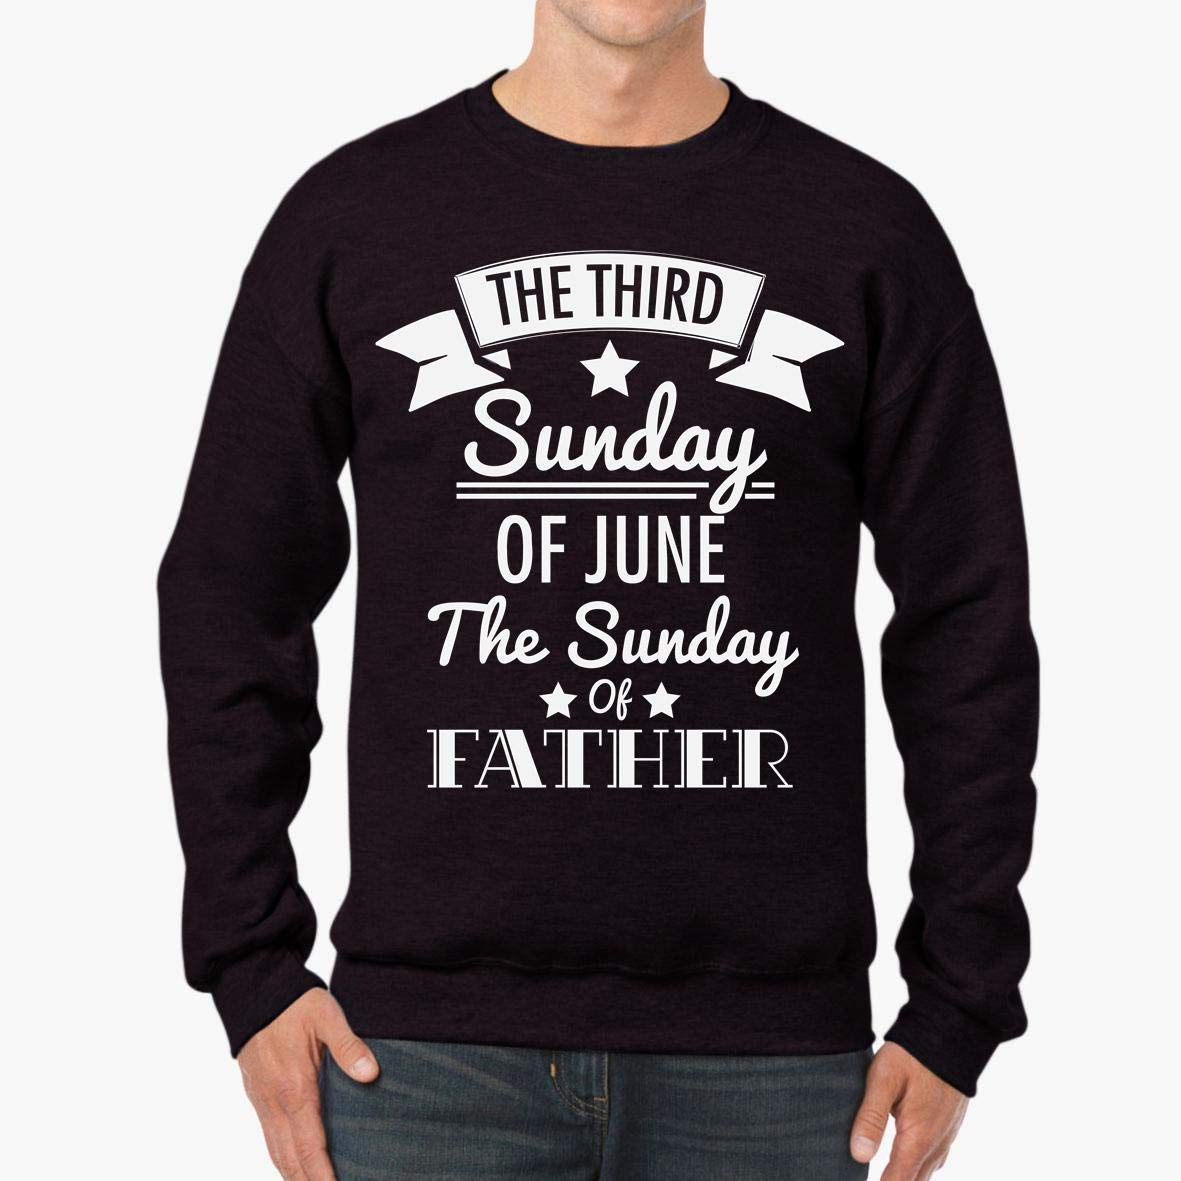 tee The Third Sunday of June The Sunday of Father Father/_s Day Unisex Sweatshirt